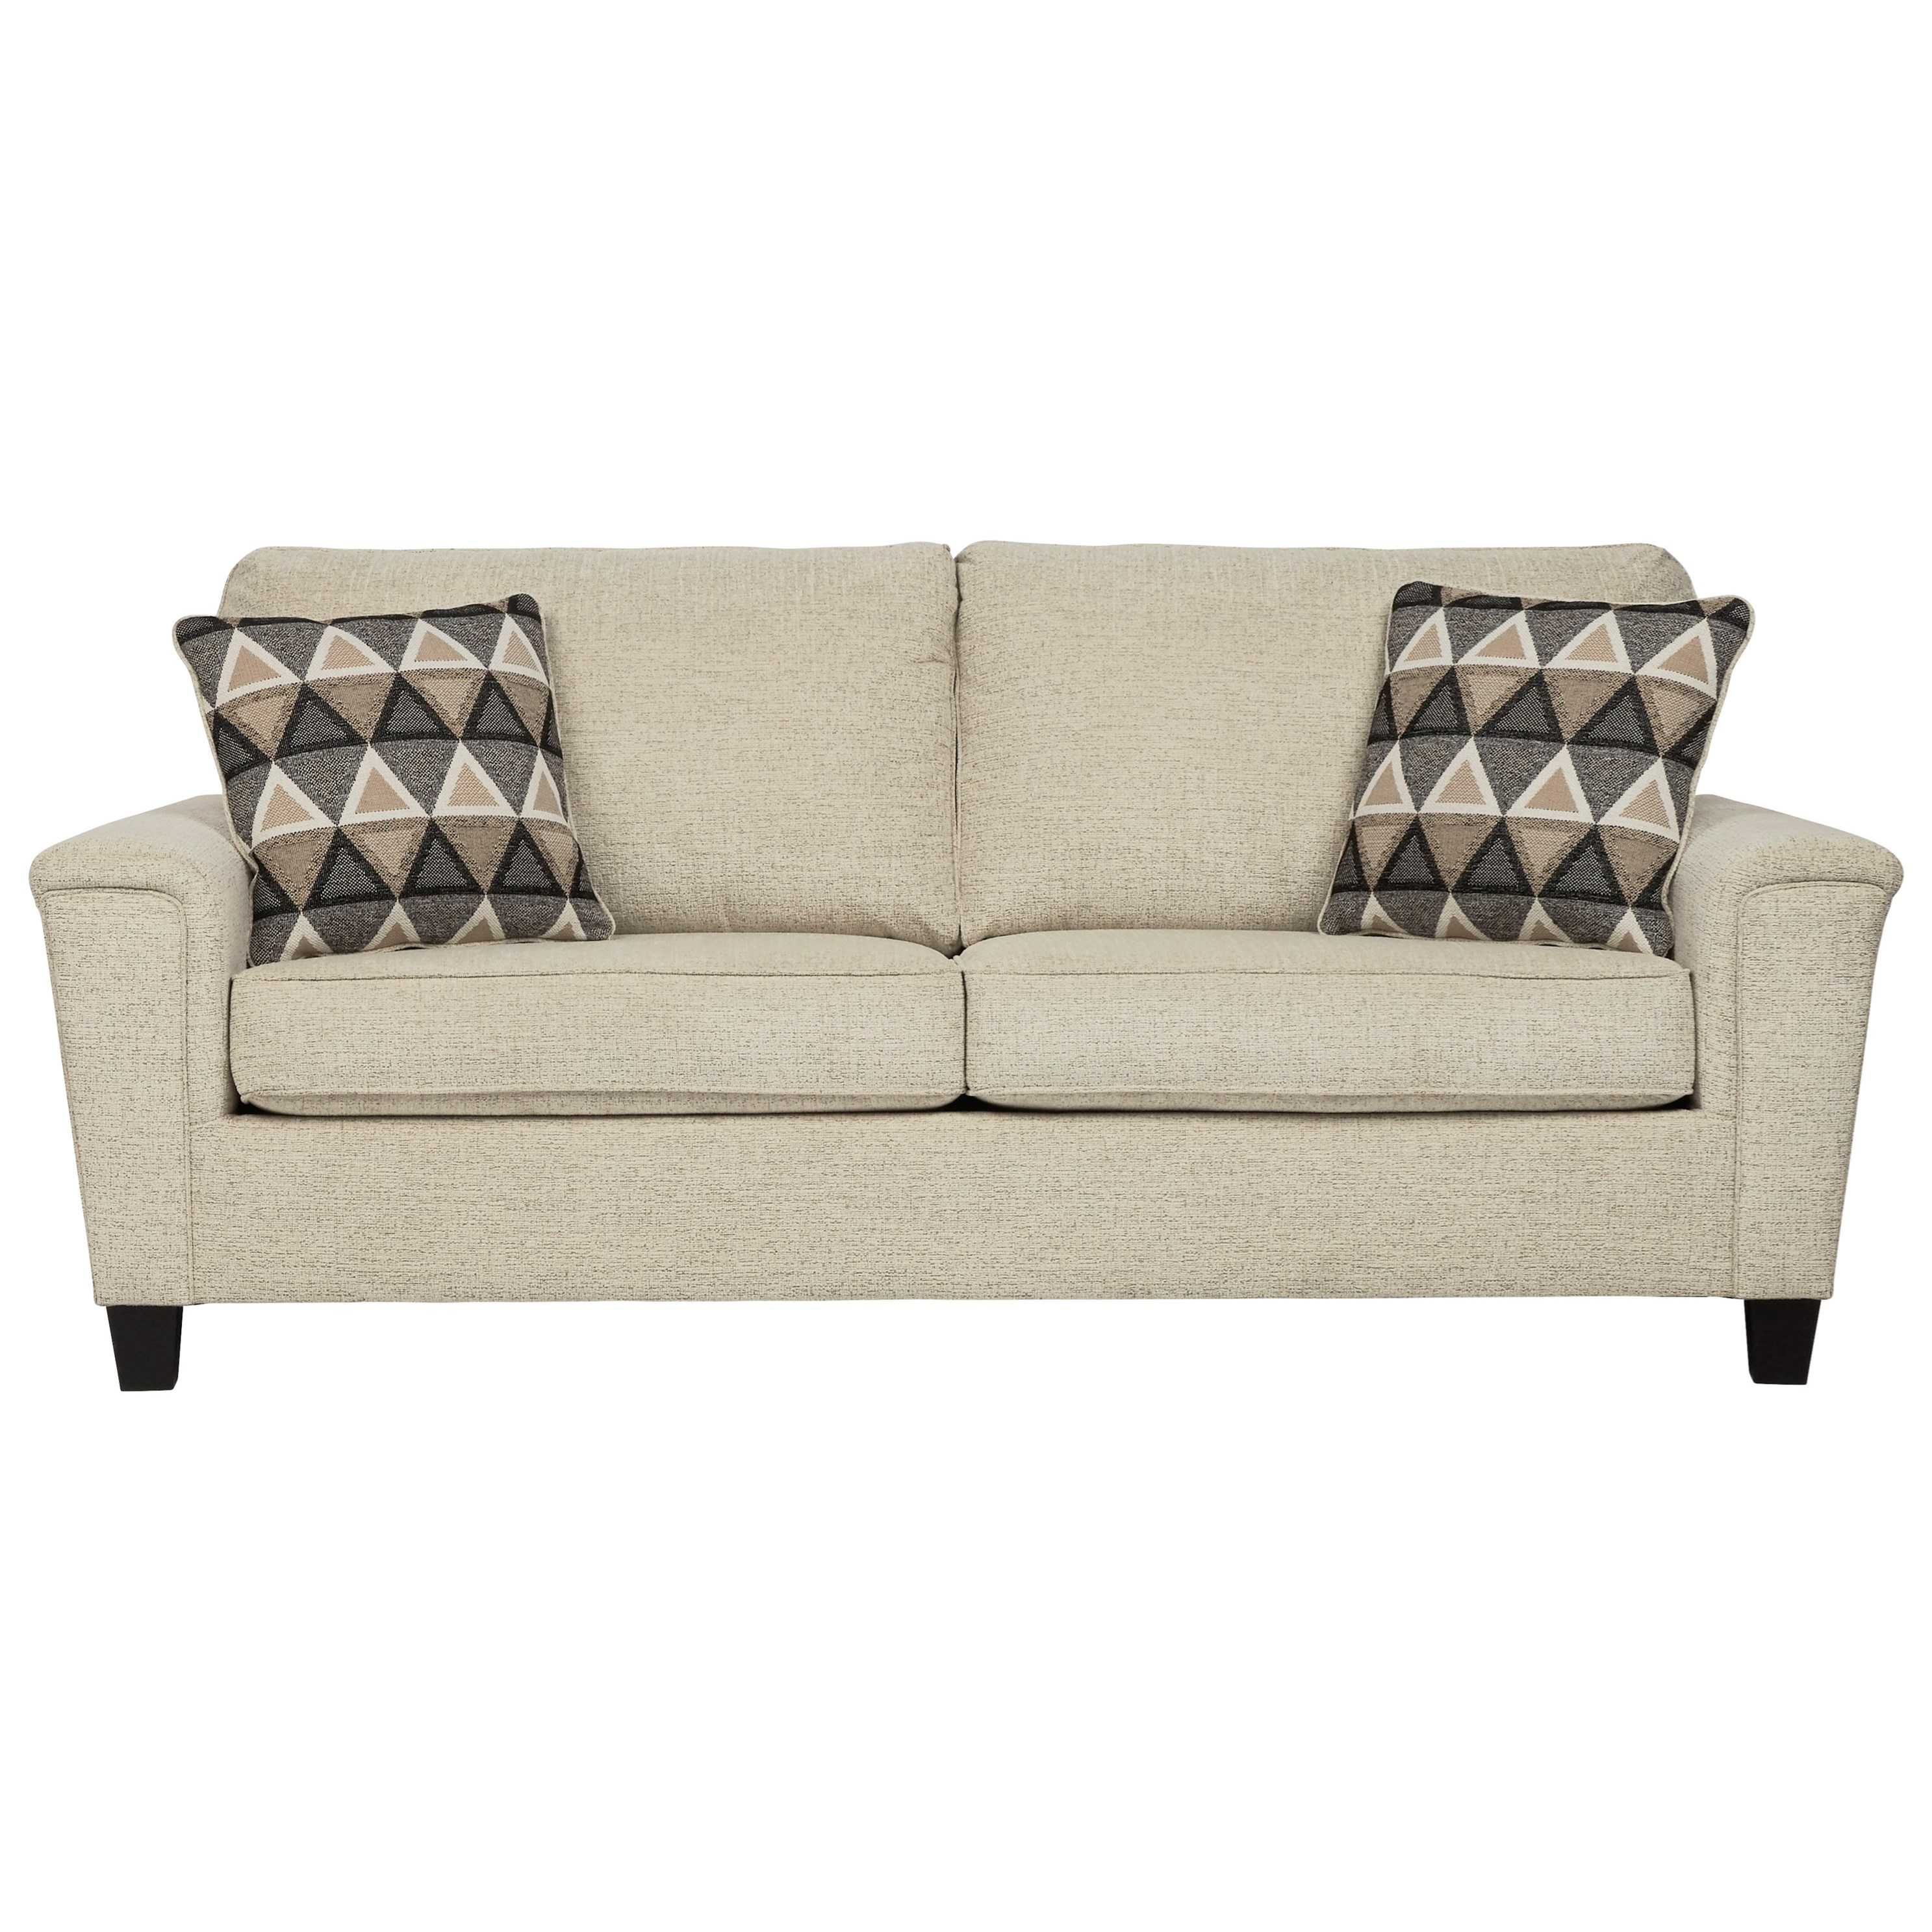 Abinger Sofa by Signature Design by Ashley at Dream Home Interiors